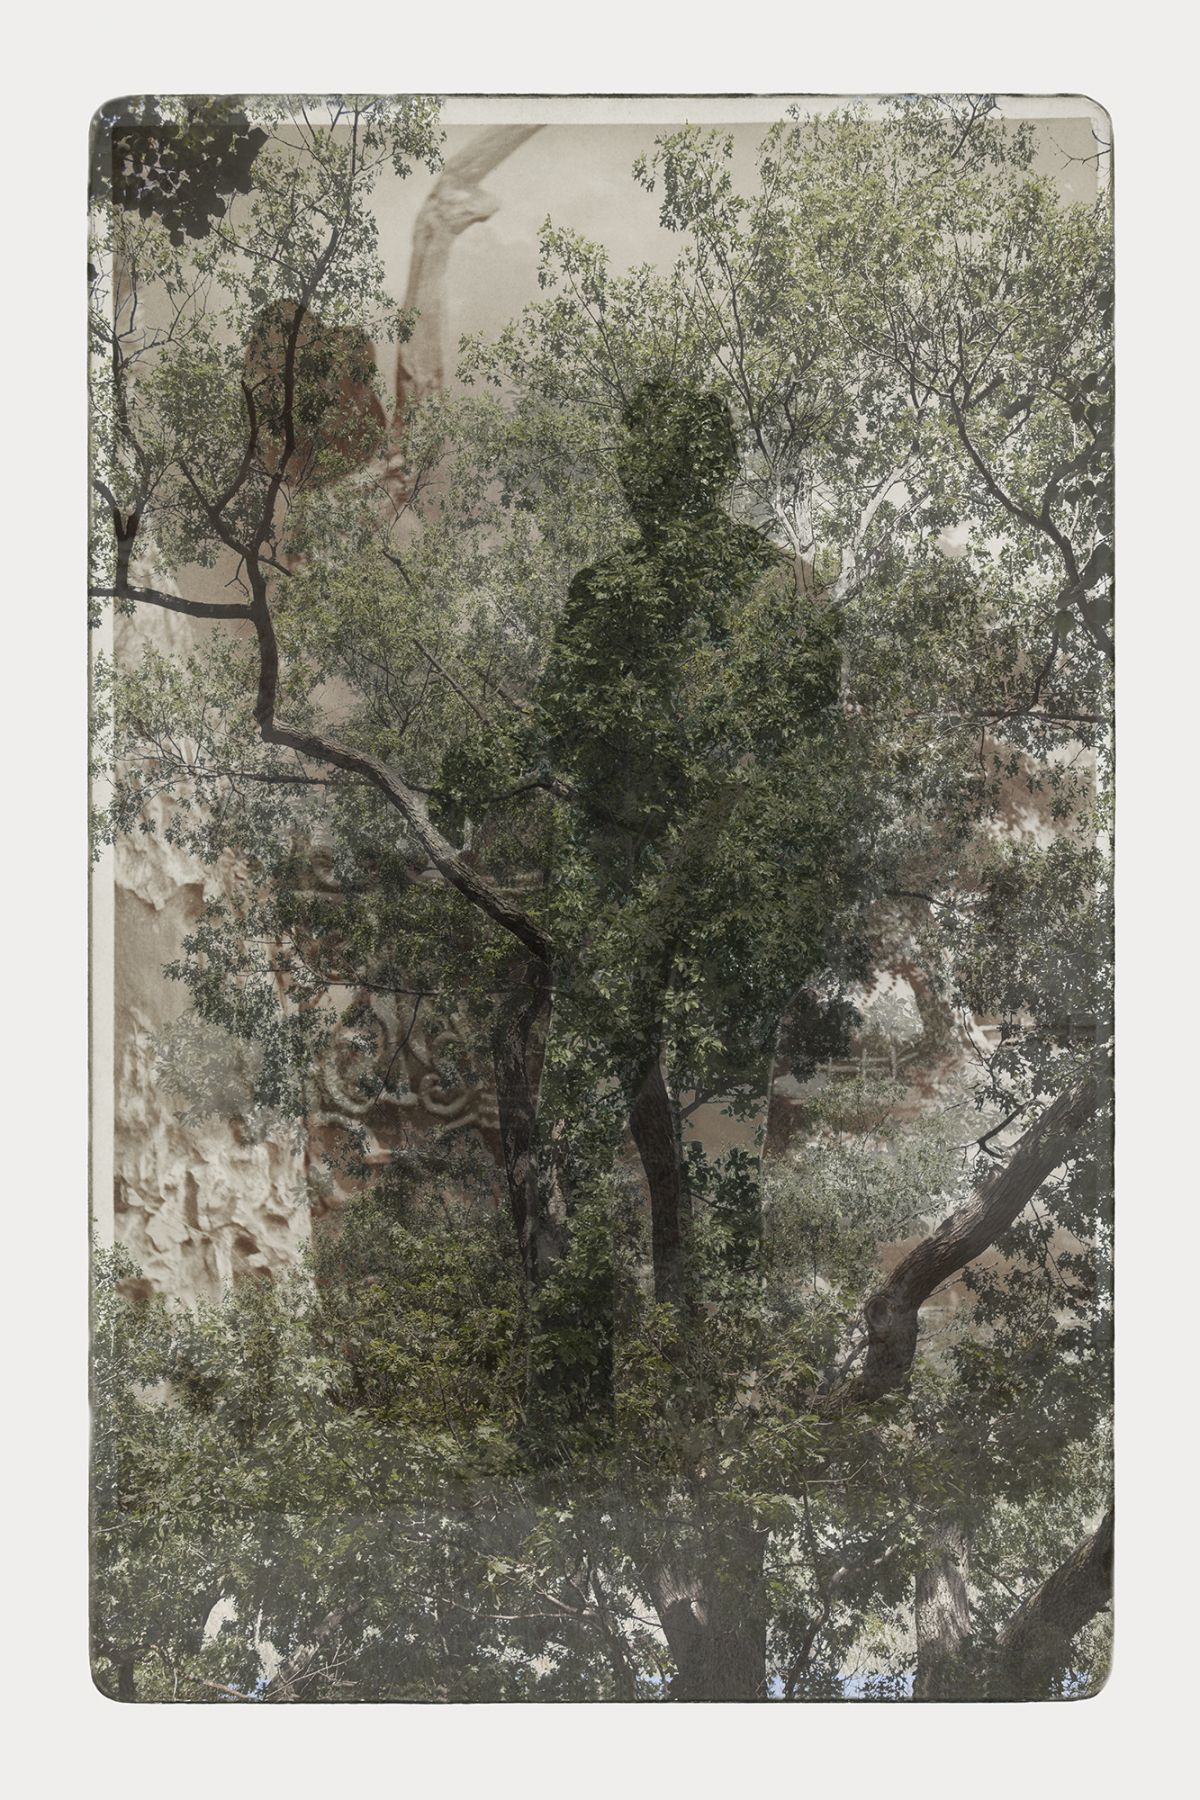 SARA ANGELUCCI | ARBORETUM (MAN/HAT/OAK) | PIGMENT PRINT ON ARCHIVAL PAPER | 24 X 34 INCHES | 2016